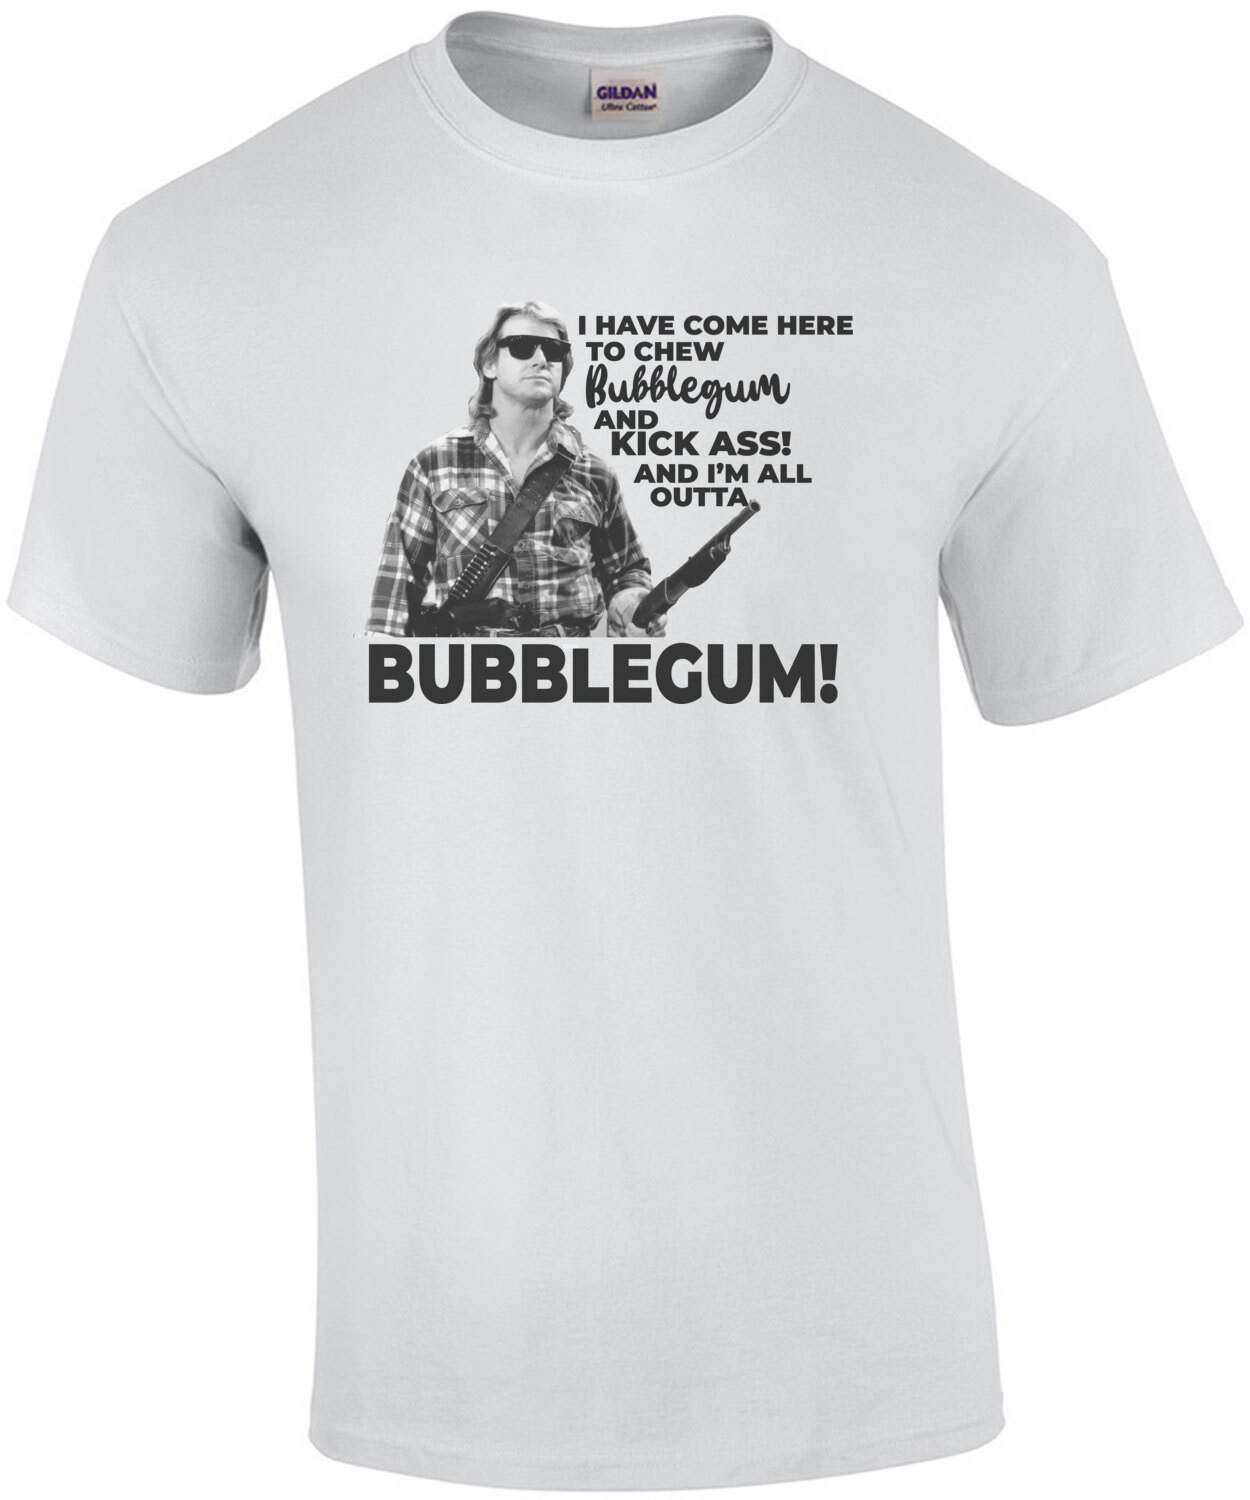 I have come here to chew bubblegum and kick ass! And I'm all outta bubblegum! Roddy Piper - They Live - 80's T-Shirt